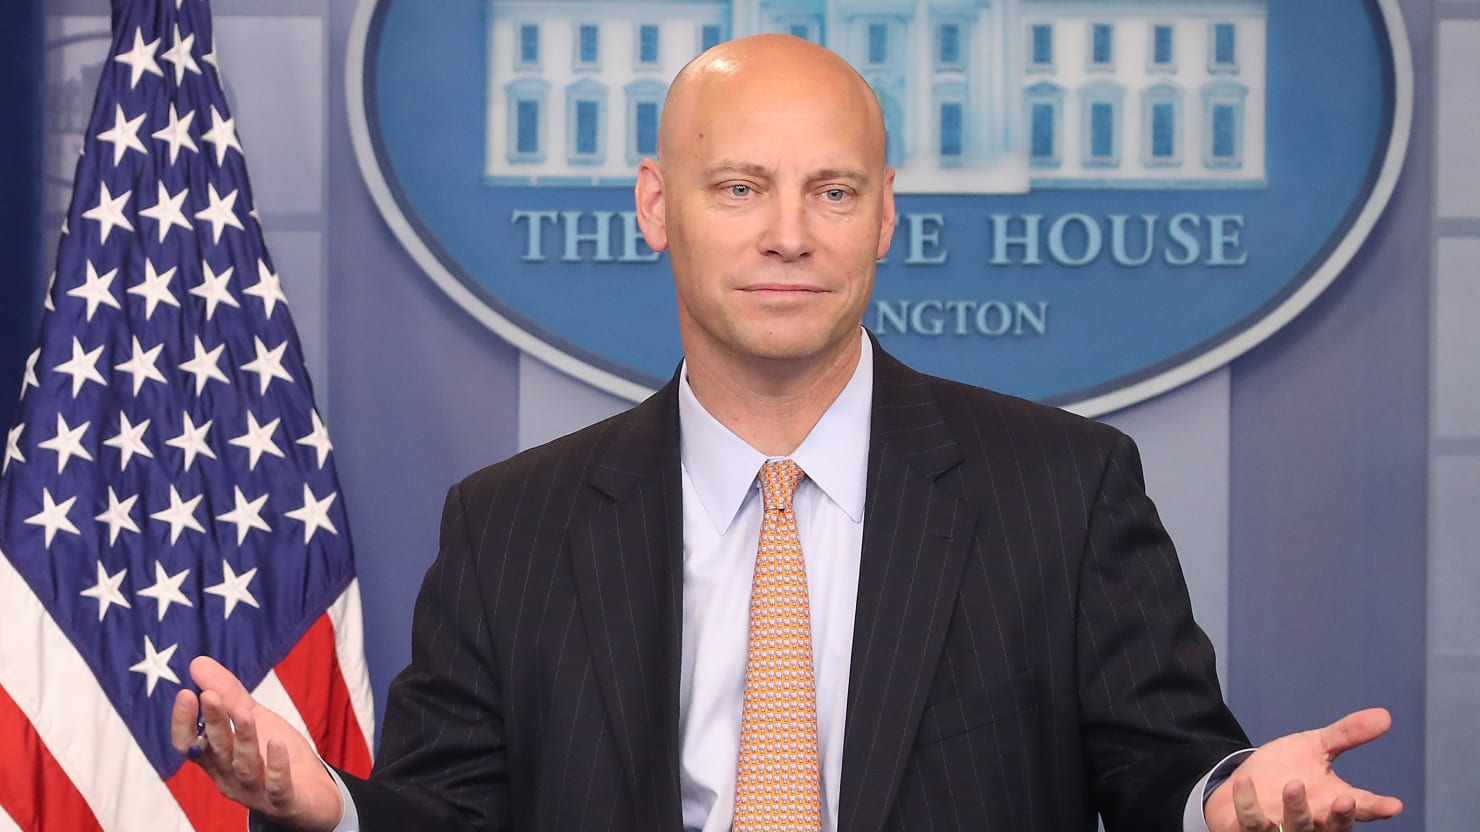 VP's Chief of Staff Marc Short's Stock Holdings Could Conflict With Coronavirus Response: NPR